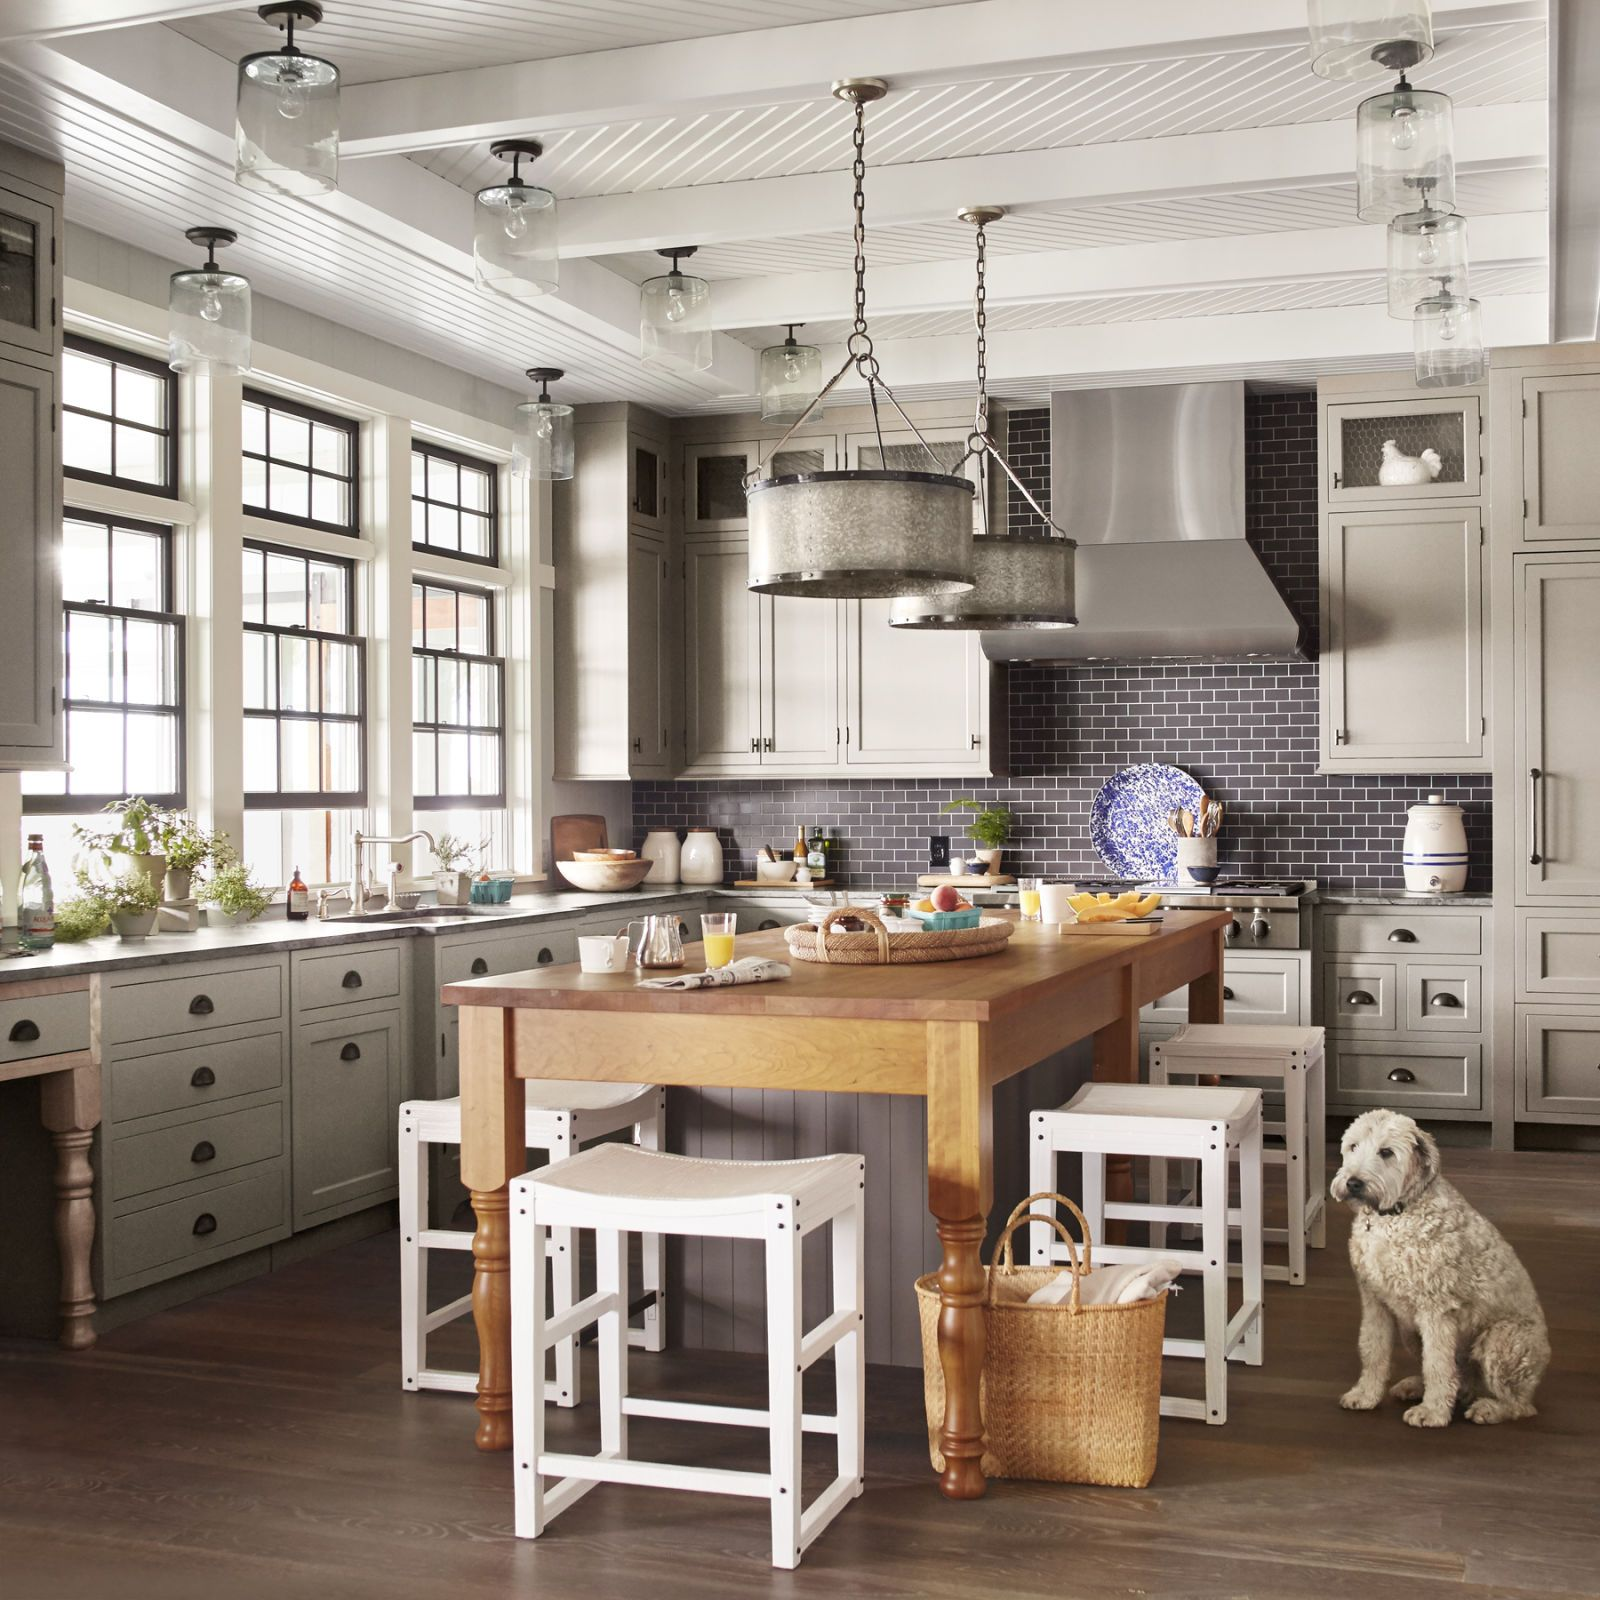 Kitchen News Kitchen Plans: 10 Essential Rules For Decorating A Lake House